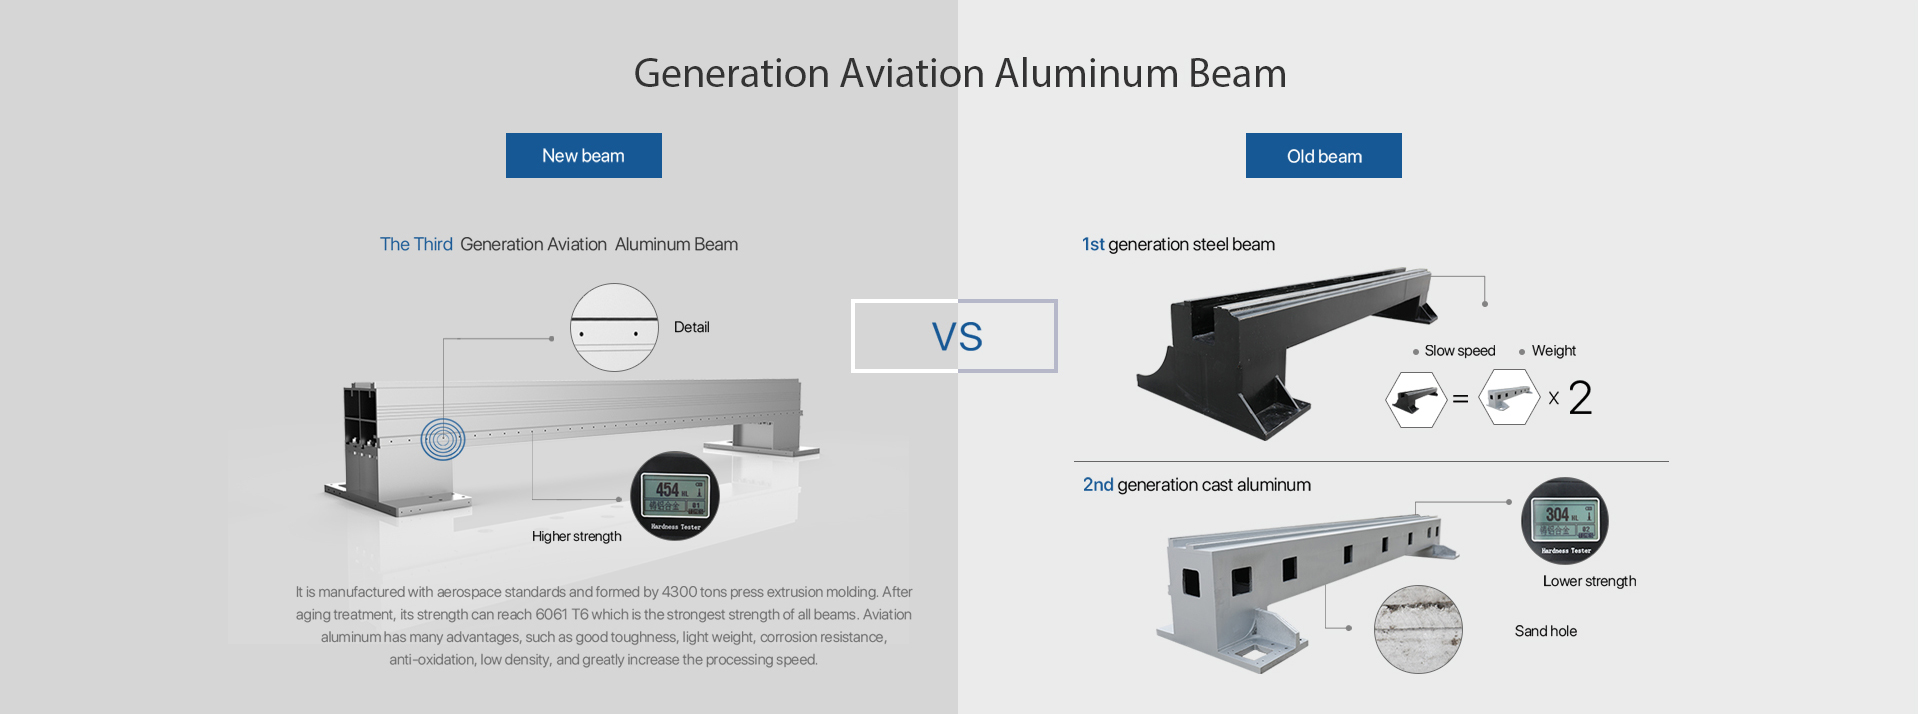 Generation Aviation Aluminum Beam